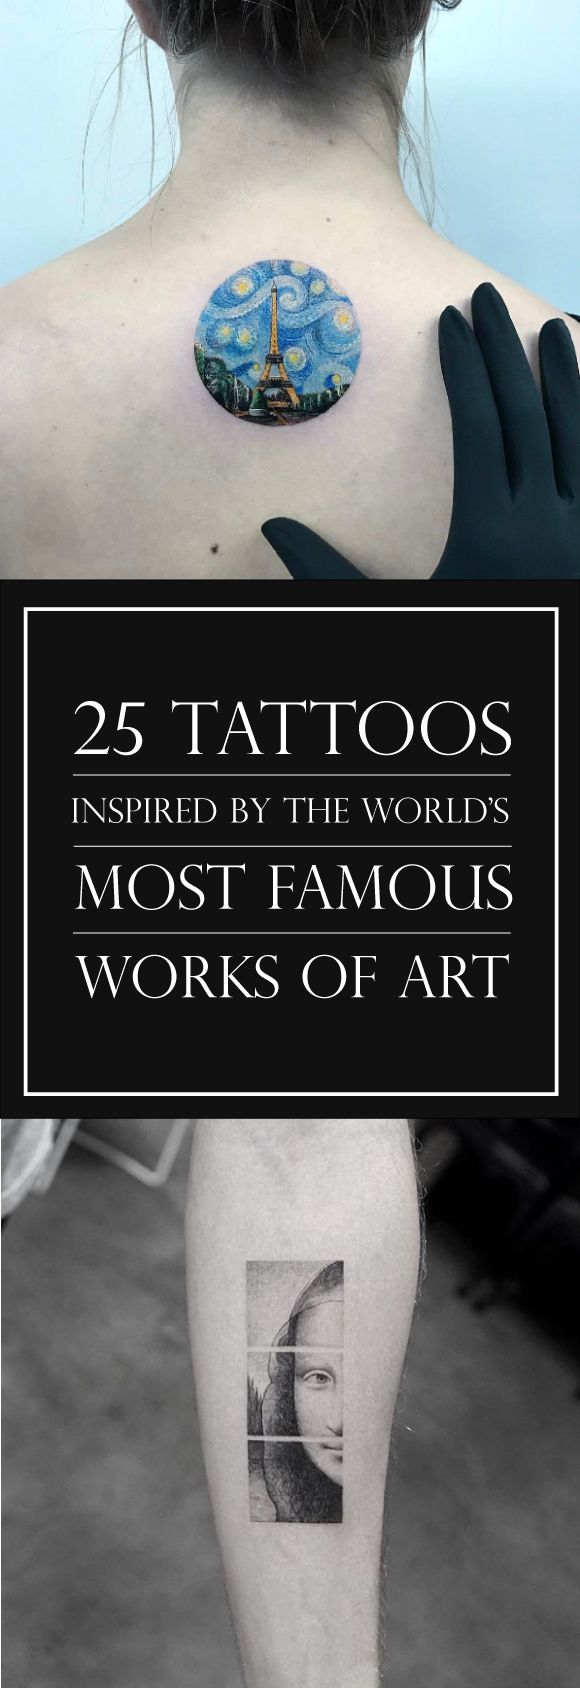 25 Tattoos Inspired by The World's Most Famous Works of Art